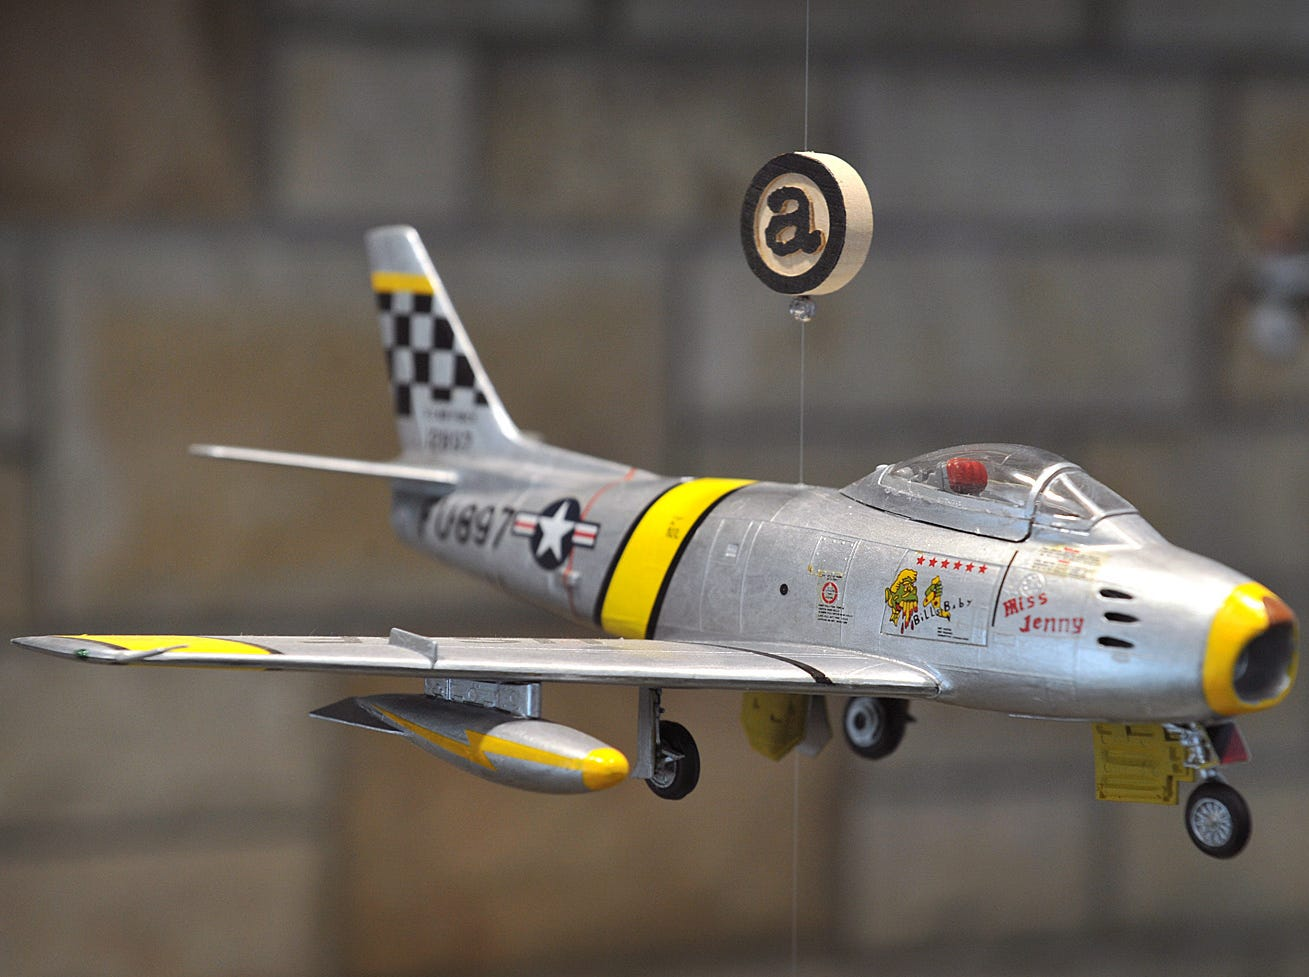 The F-86 Sabre was one of the earliest jet fighter aircraft used by the U.S. Air Force in the 1940s, and this scale model is one of 20 different planes displayed at the Hometown Combat Aviation Heroes and their Planes exhibit at the Wichita Falls Regional Airport.